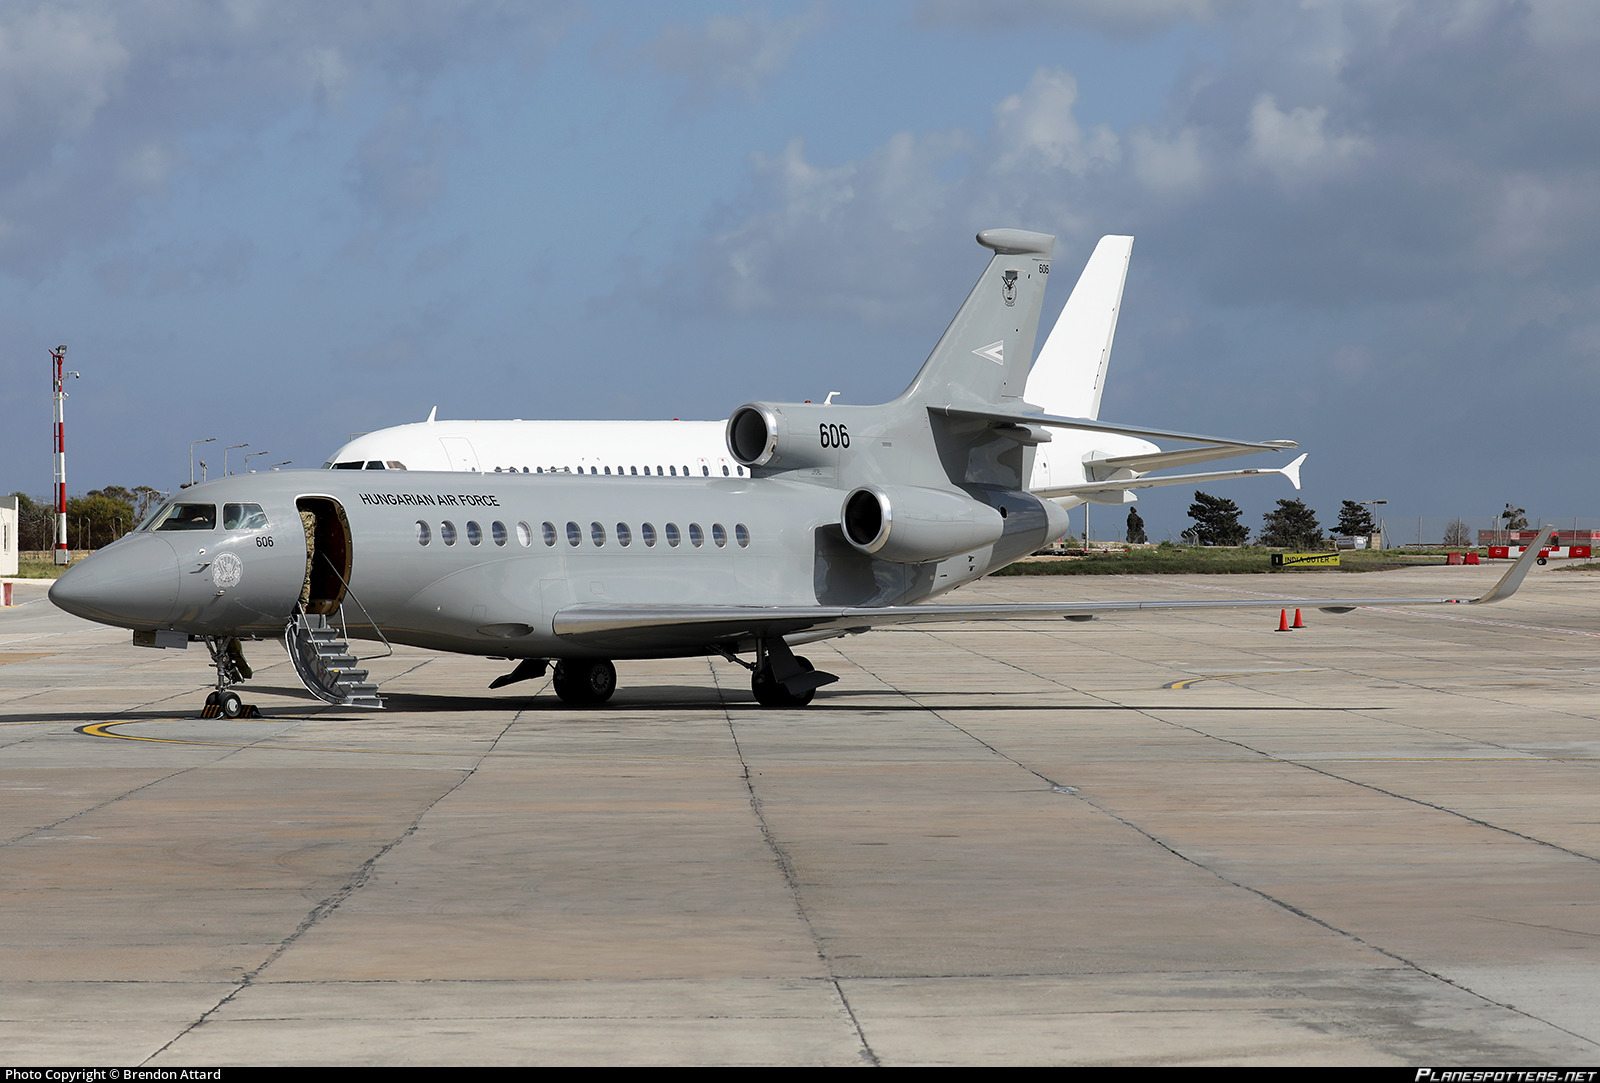 606 Hungarian Air Force Dassault Falcon 7X Photo by Brendon